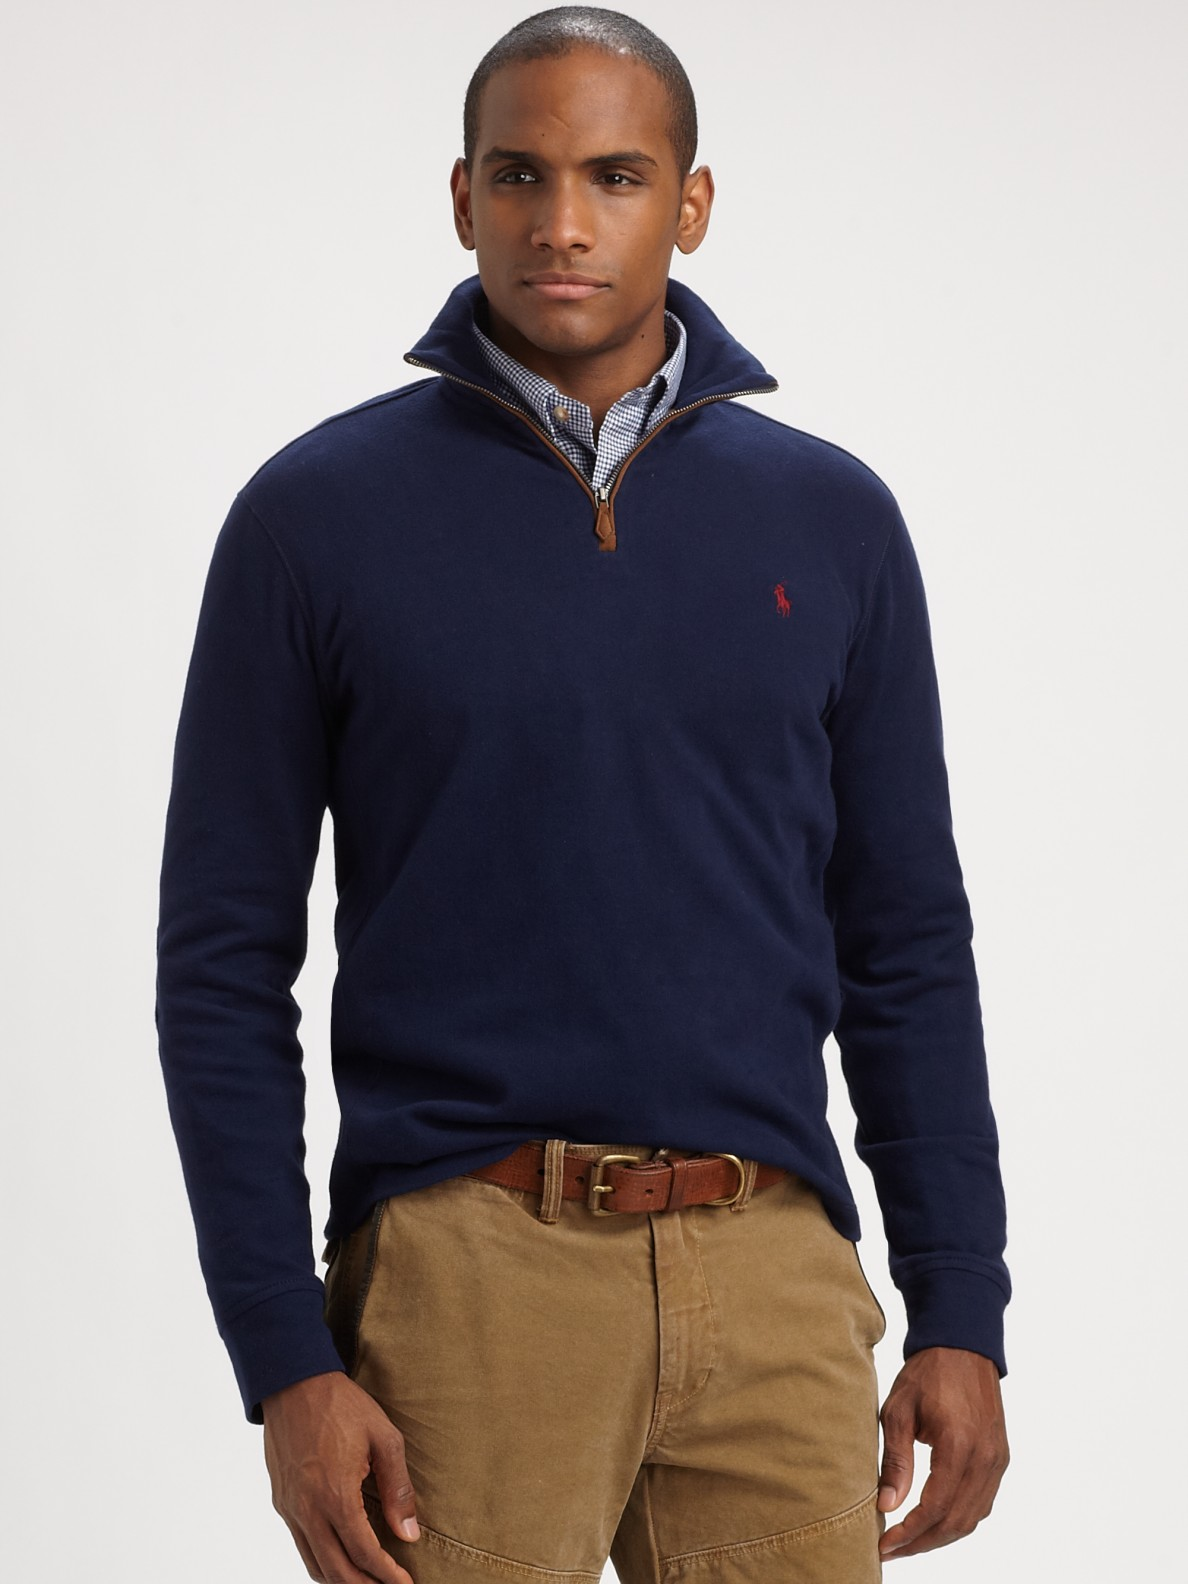 polo ralph lauren sueded jersey halfzip pullover in blue. Black Bedroom Furniture Sets. Home Design Ideas